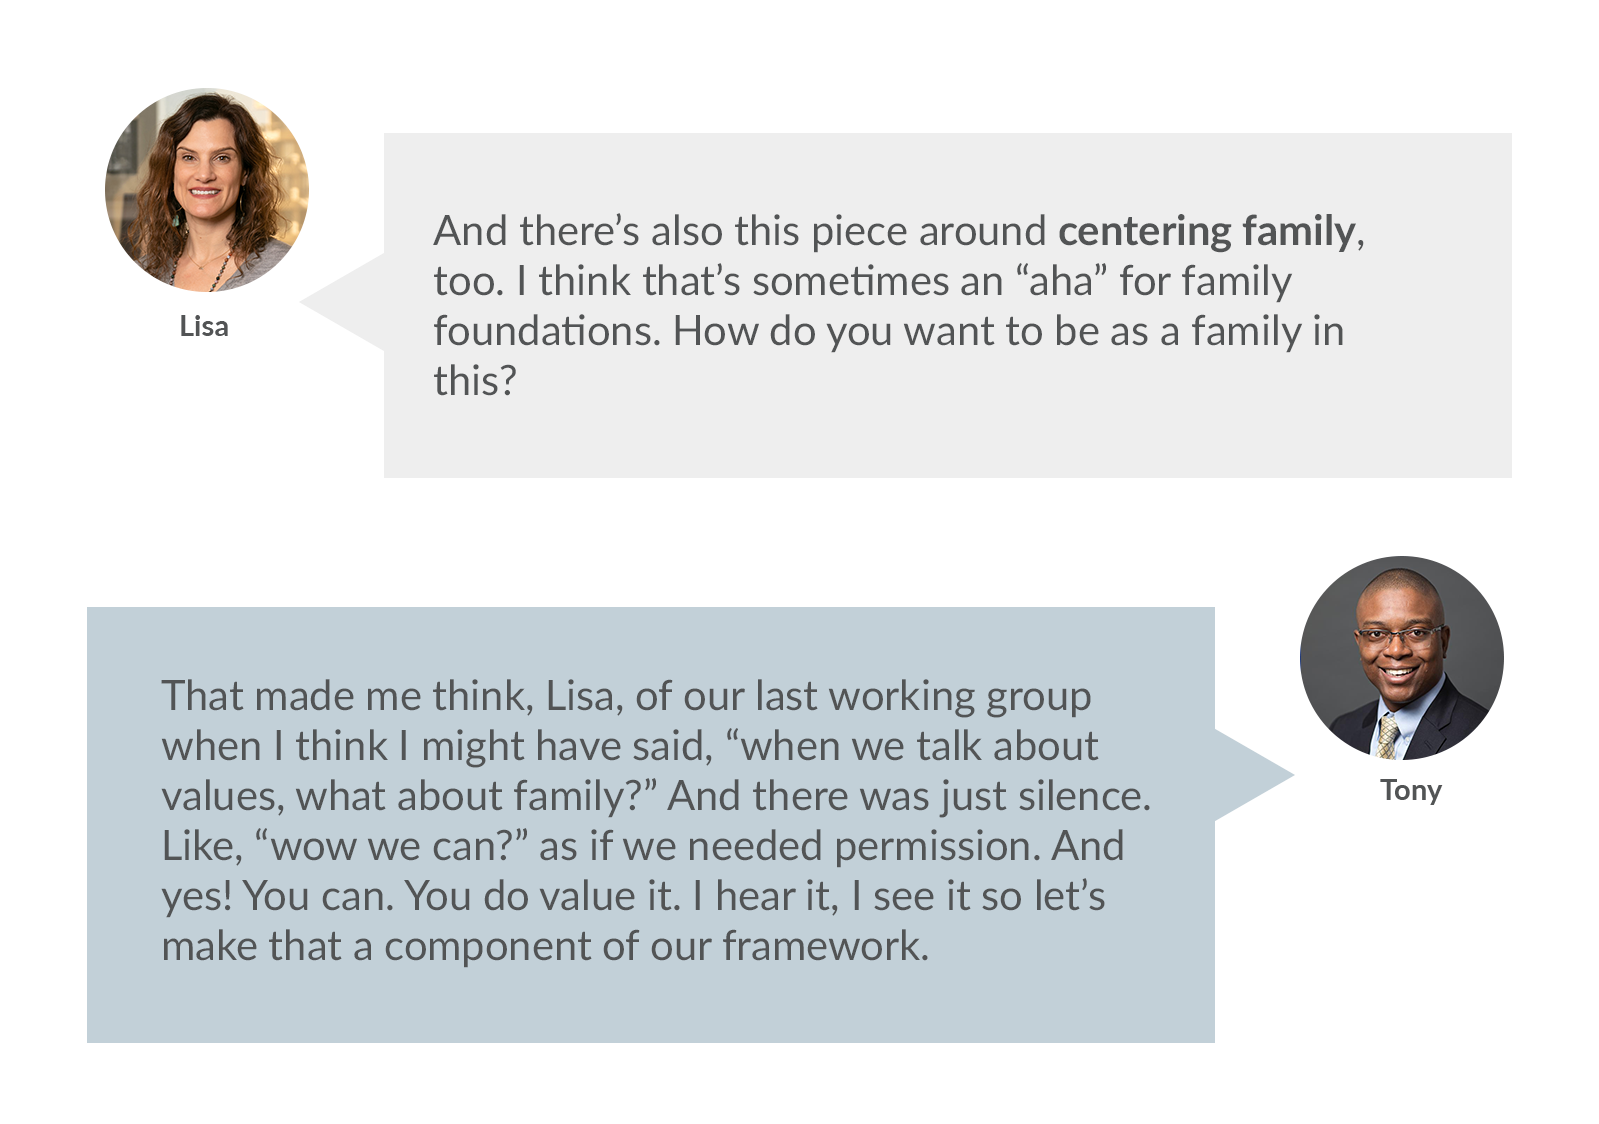 """Lisa: And there's also this piece around centering family, too. I think that's sometimes an """"aha"""" for family foundations. How do you want to be as a family in this?   Tony: That made me think, Lisa, of our last working group when I think I might have said, """"when we talk about values, what about family?"""" And there was just silence. Like, """"wow we can?"""" as if we needed permission. And yes! You can. You do value it. I hear it, I see it so let's make that a component of our framework."""